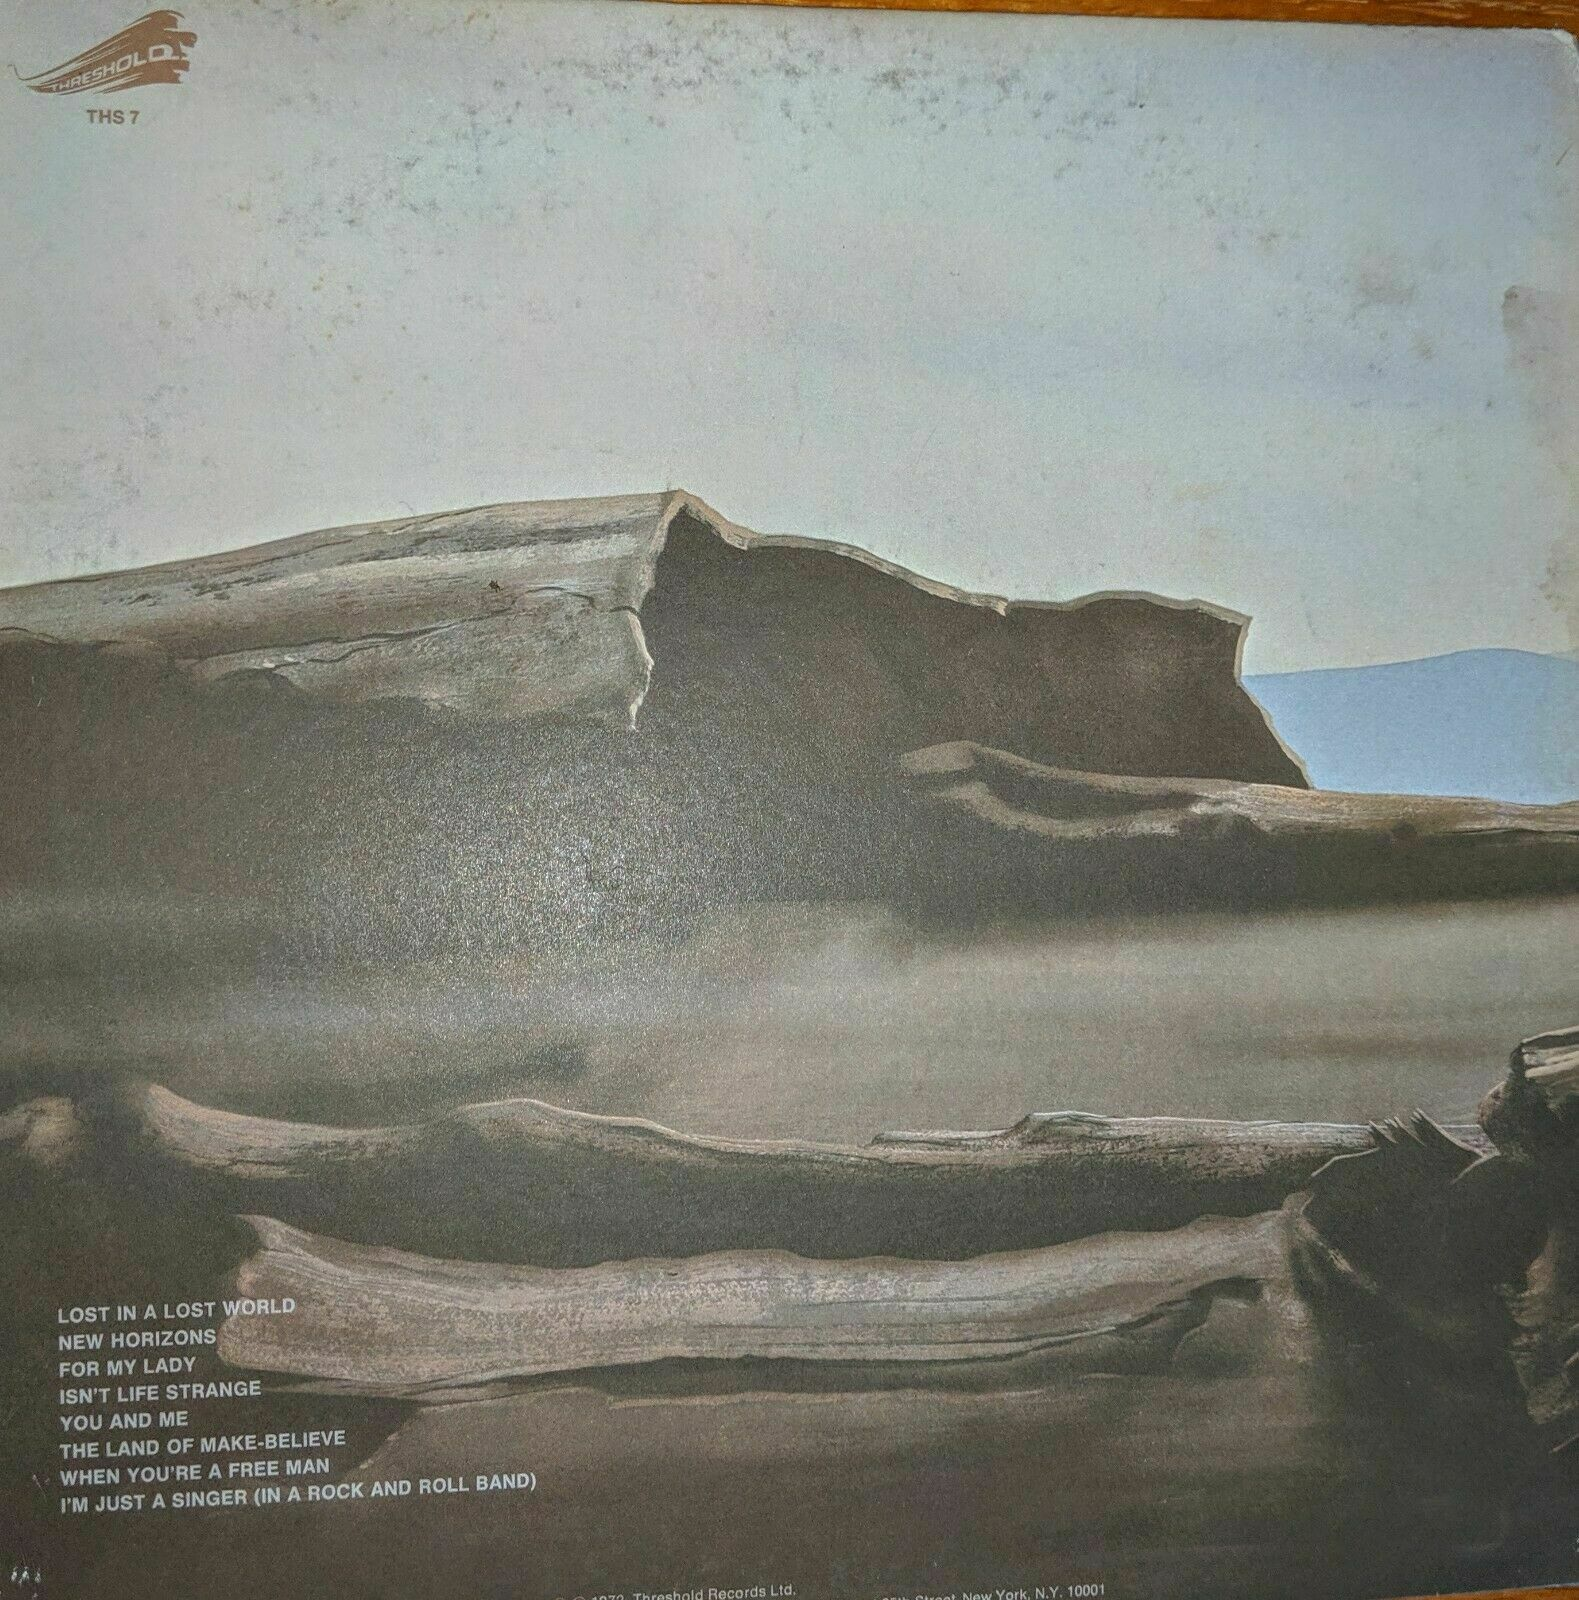 Moody Blues, Seventh Sojourn Vinyl LP, released 1972, London Records image 2